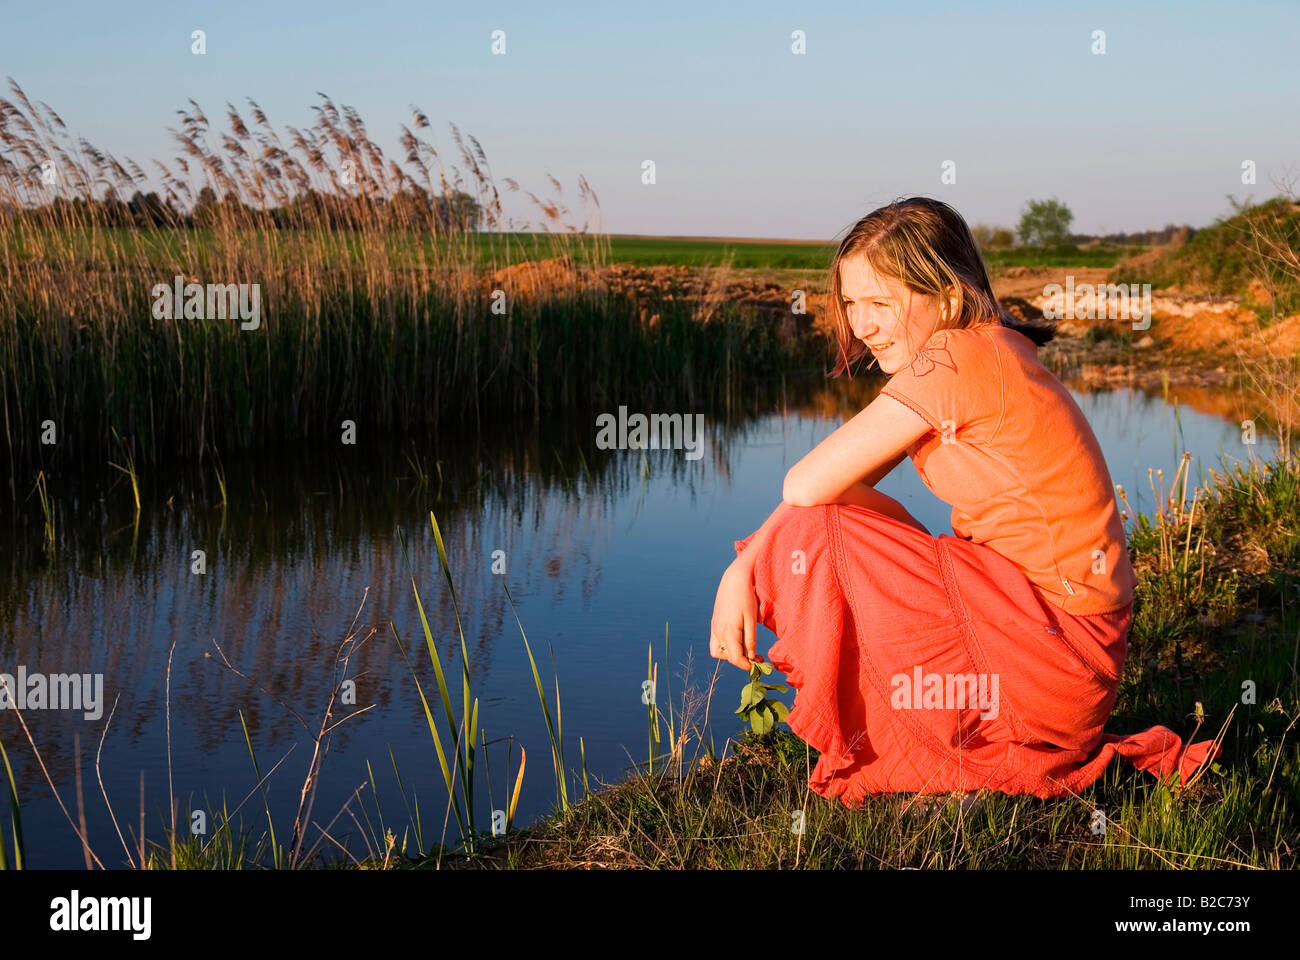 Girl dreamily kneeling next to a small lake in the evening sun - Stock Image